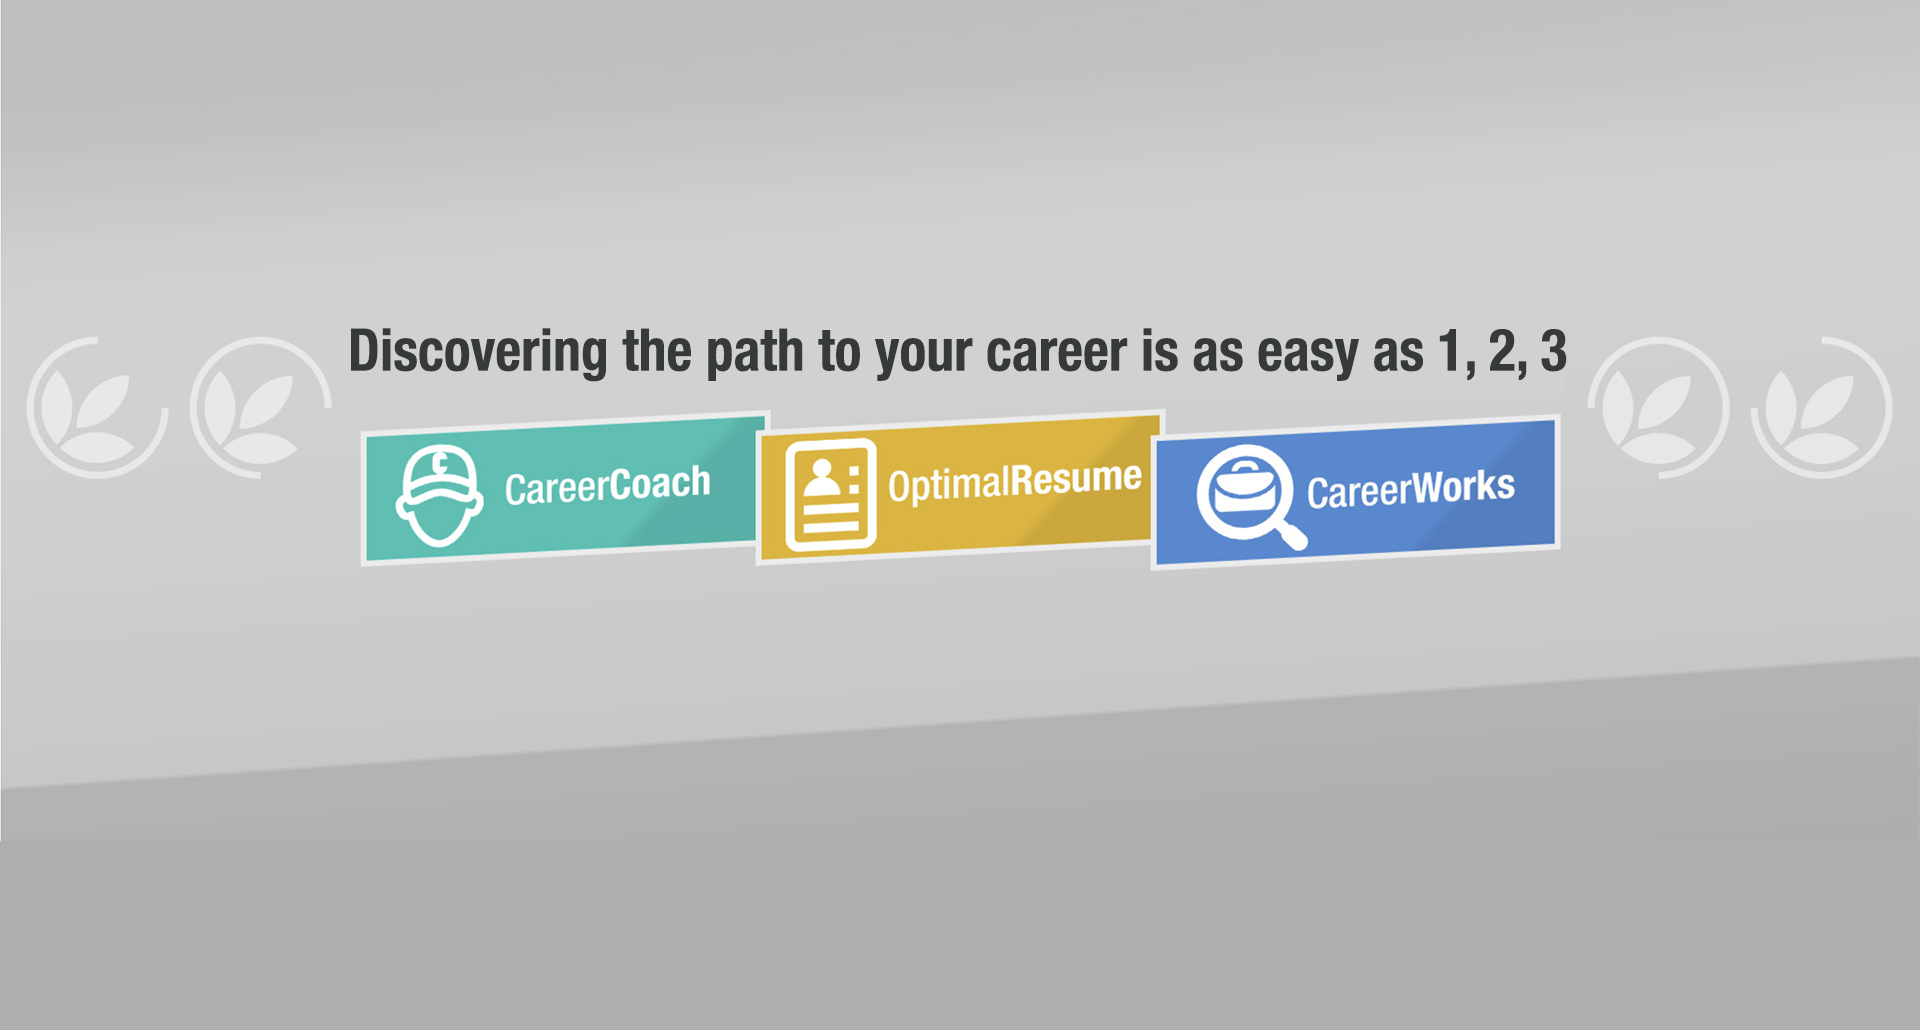 Discovering the path to your career is as easy as 1, 2, 3